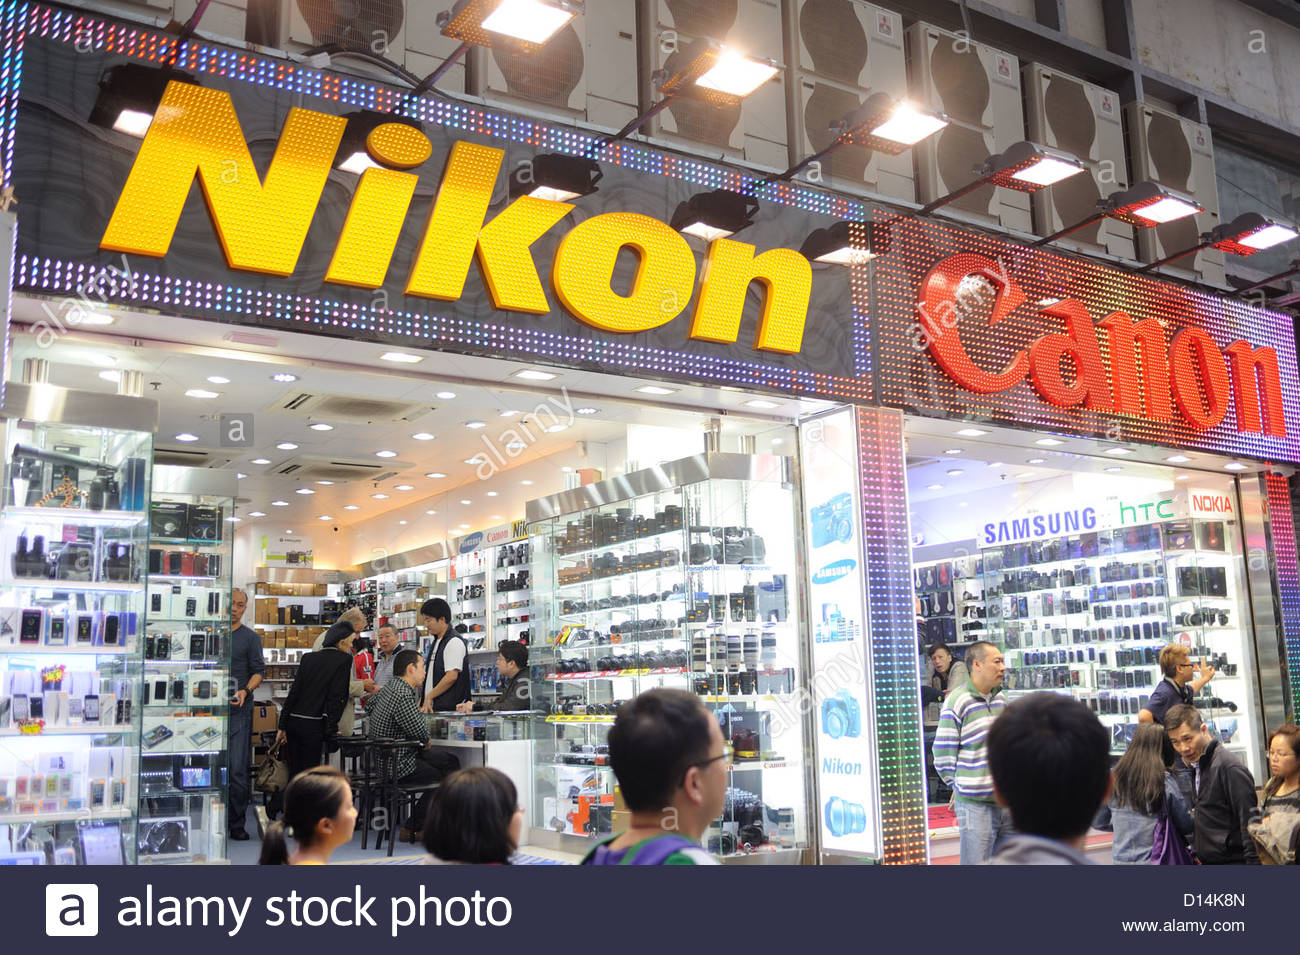 aebf3c9131 Hong Kong Camera shop on Nathan Road specializing in Nikon. - Stock Image